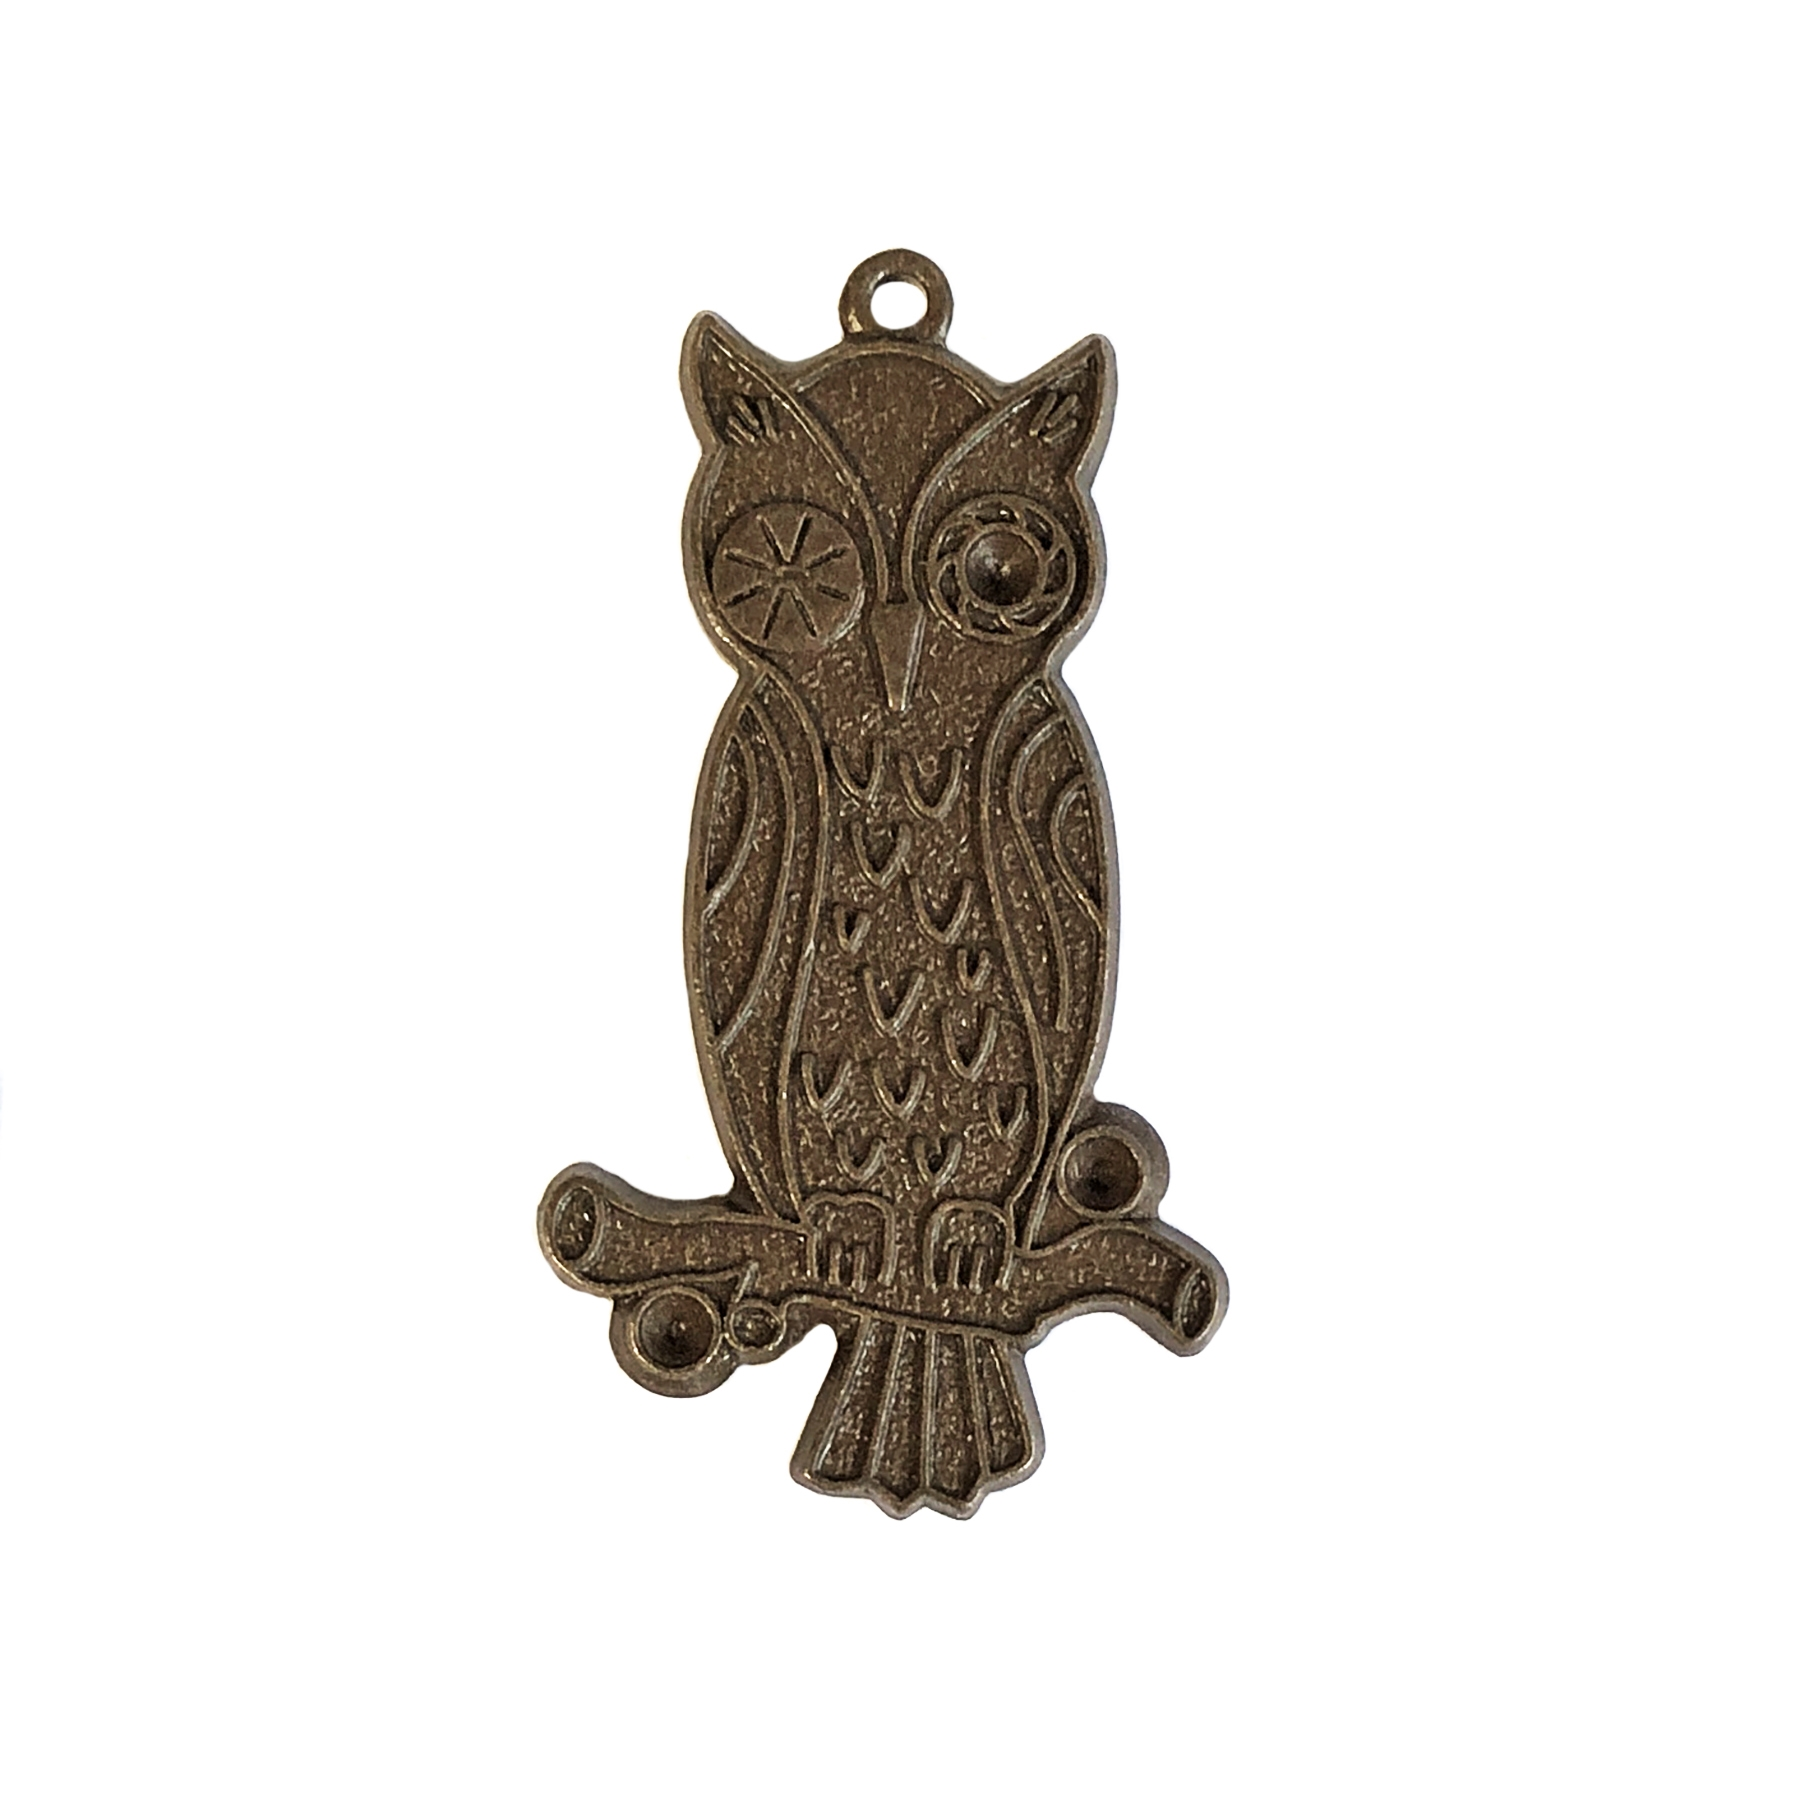 winking owl, chocolate brass, owl, brass birds, birds, 33x19mm, pendant, charm, brass stamping, arts and crafts, brass owl, US made, nickel free, B'sue Boutiques, jewelry making, jewelry findings, vintage supplies, jewelry supplies, 09969